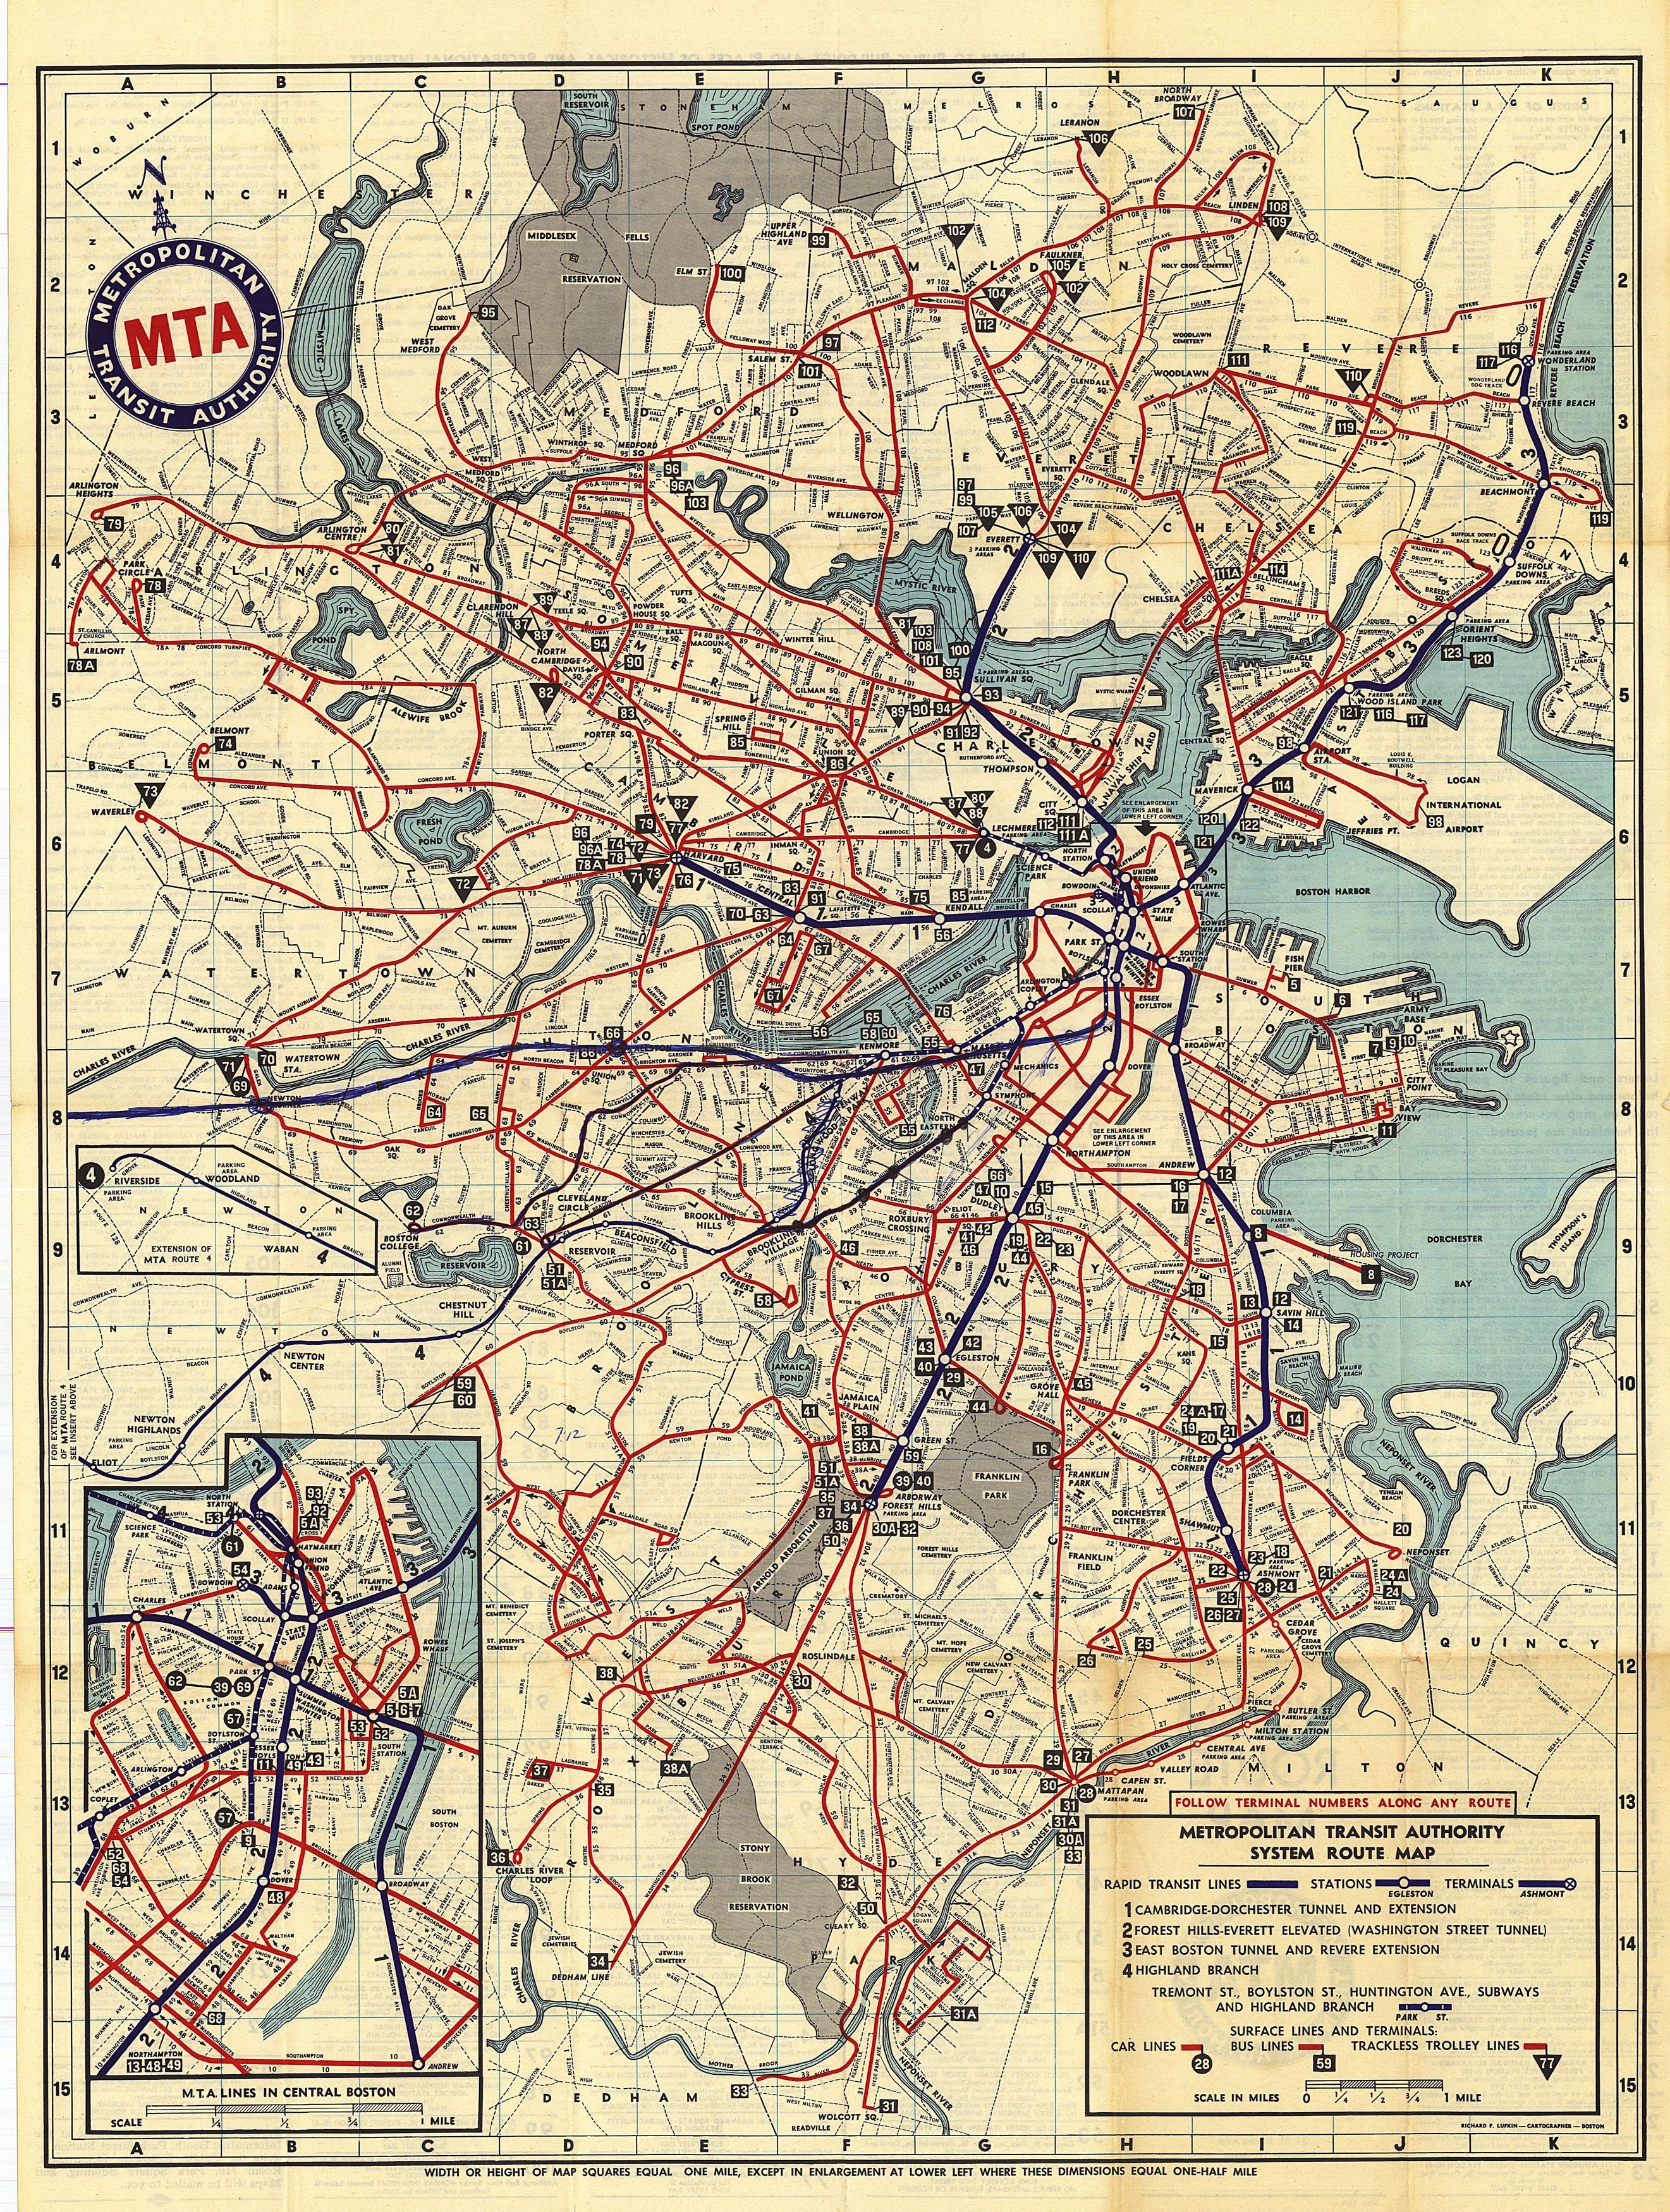 File:1961 M.T.A. Boston map.png - Wikimedia Commons on brooklyn battery tunnel map, path map, lirr map, san francisco municipal railway map, nycta map, north railroad map, bus map, wmata map, amtrak map, septa map, metro map, central park map, nyc map, queens plaza map, nj transit map, new jersey transit map, marc map, cta map, mbta map, staten island map,